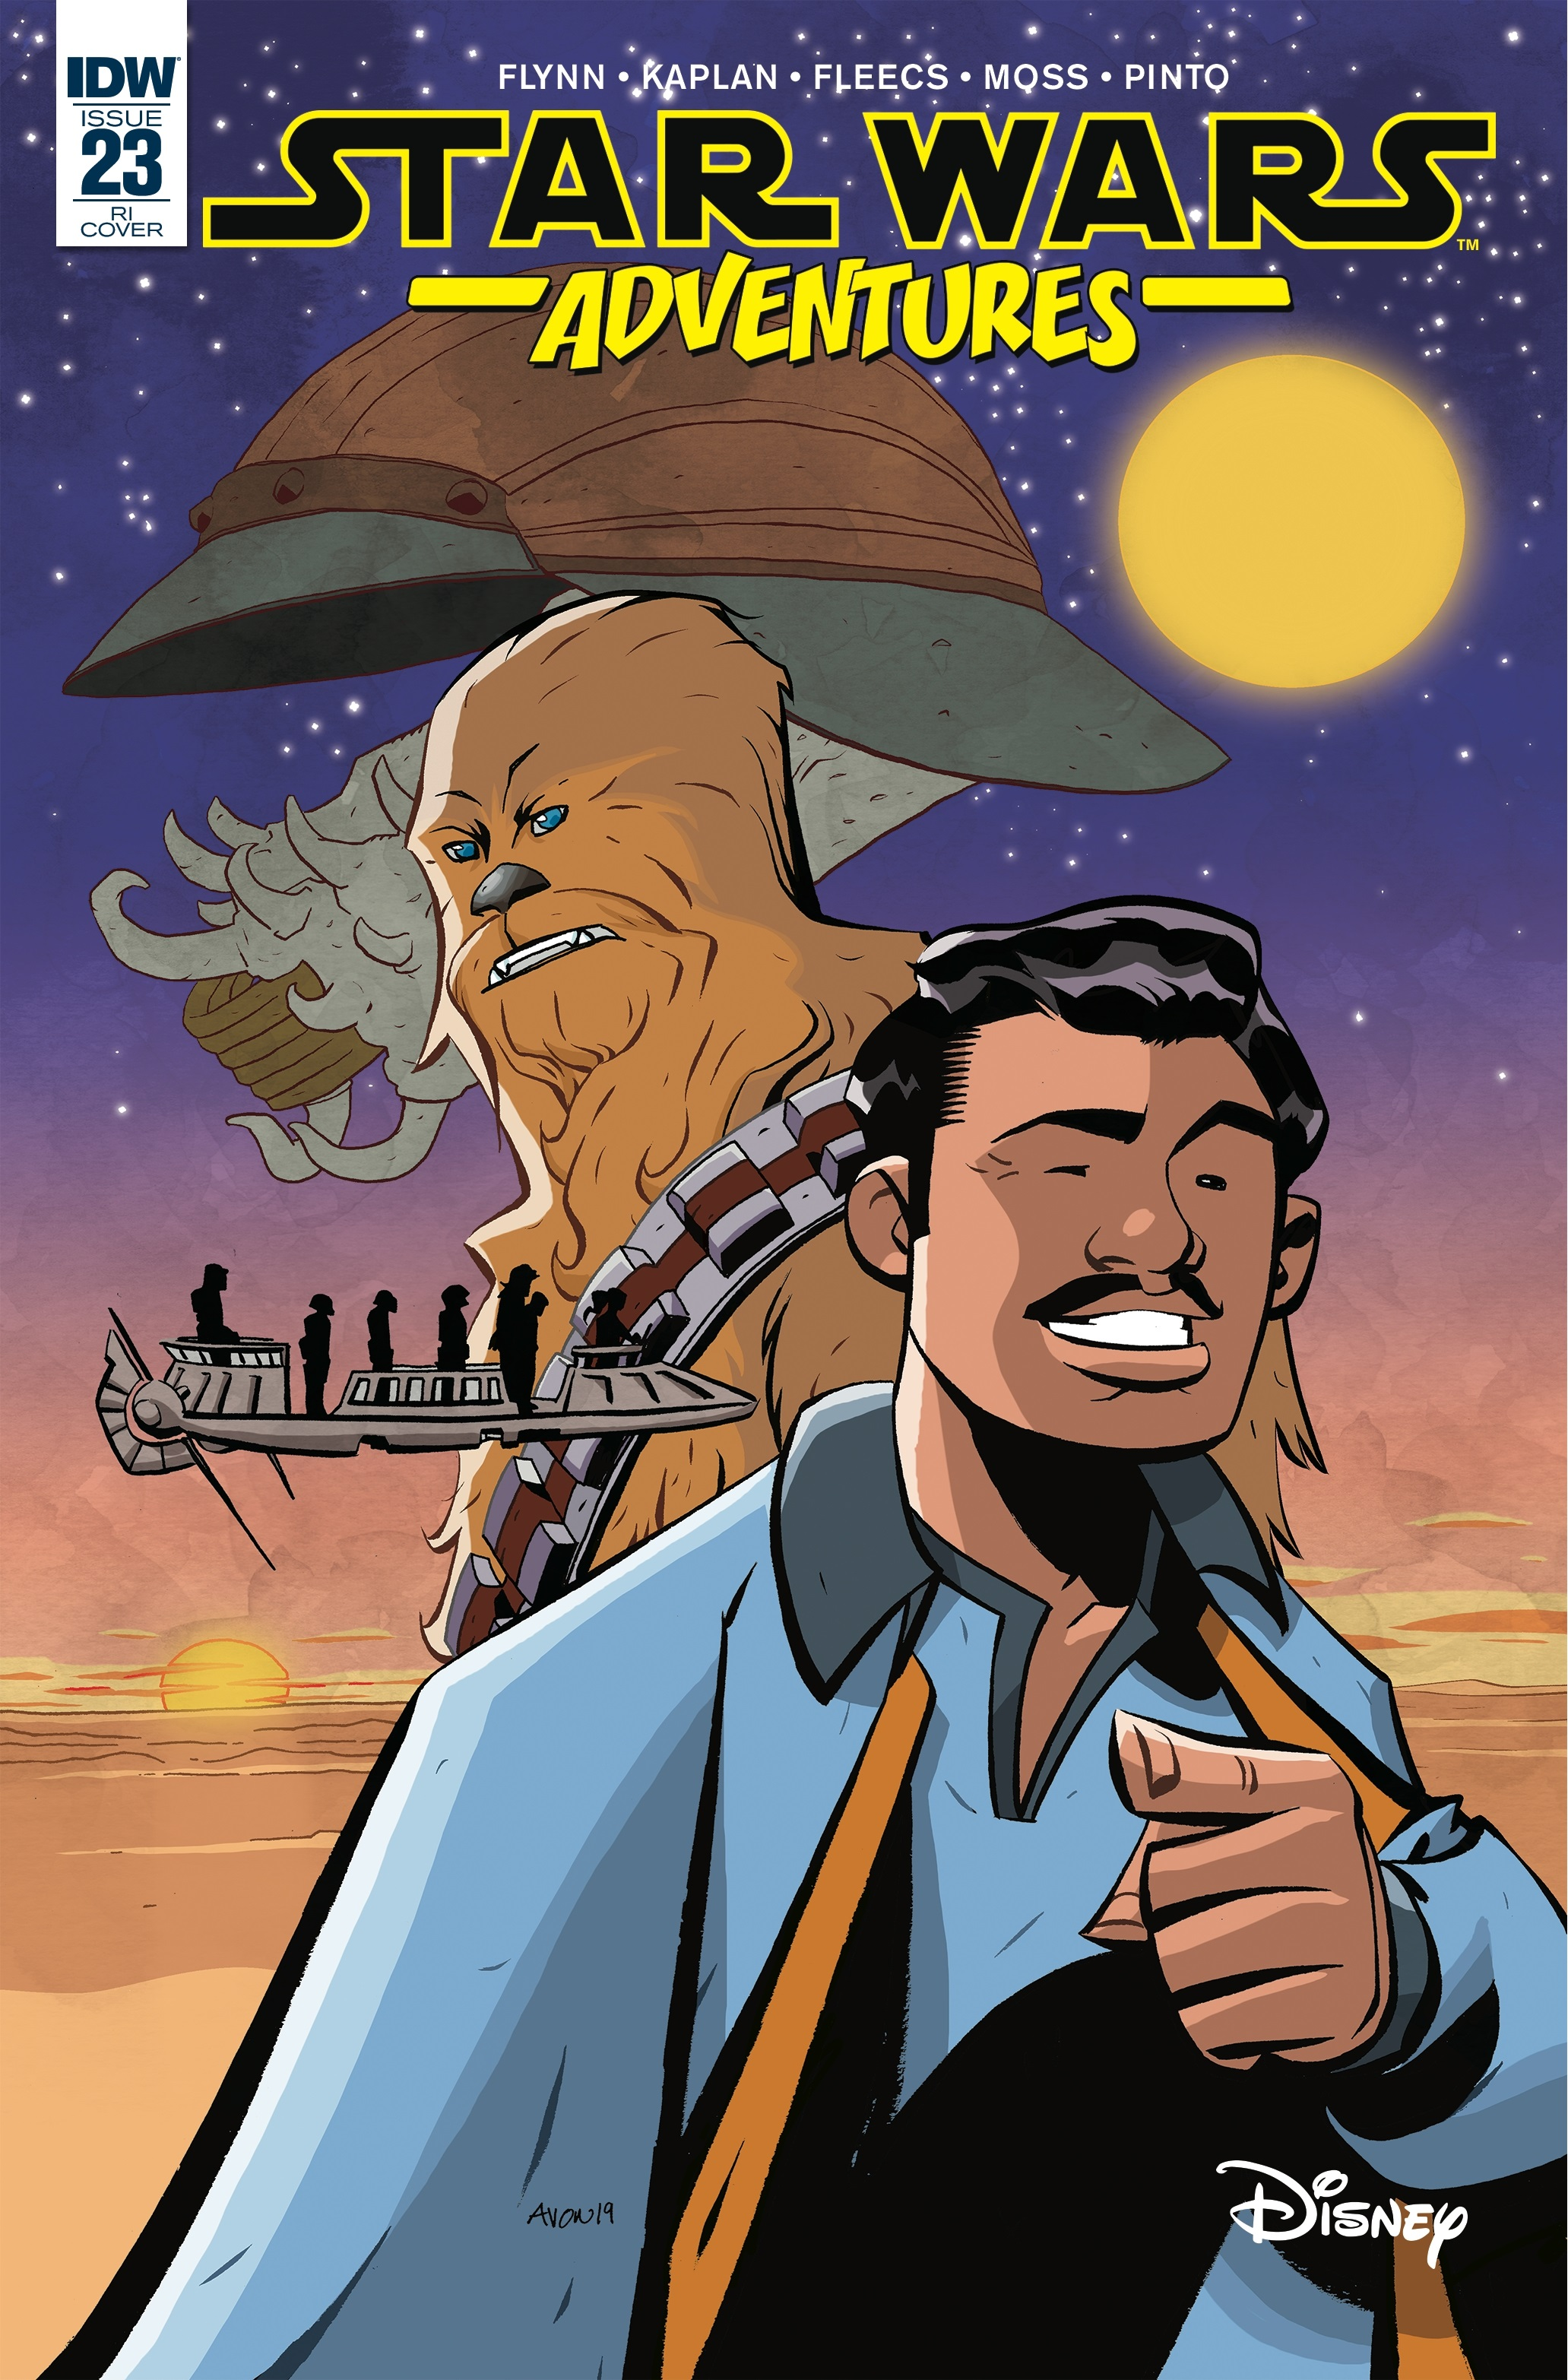 Star Wars Adventures #23 (Mike Oeming Variant Cover) (03.07.2019)